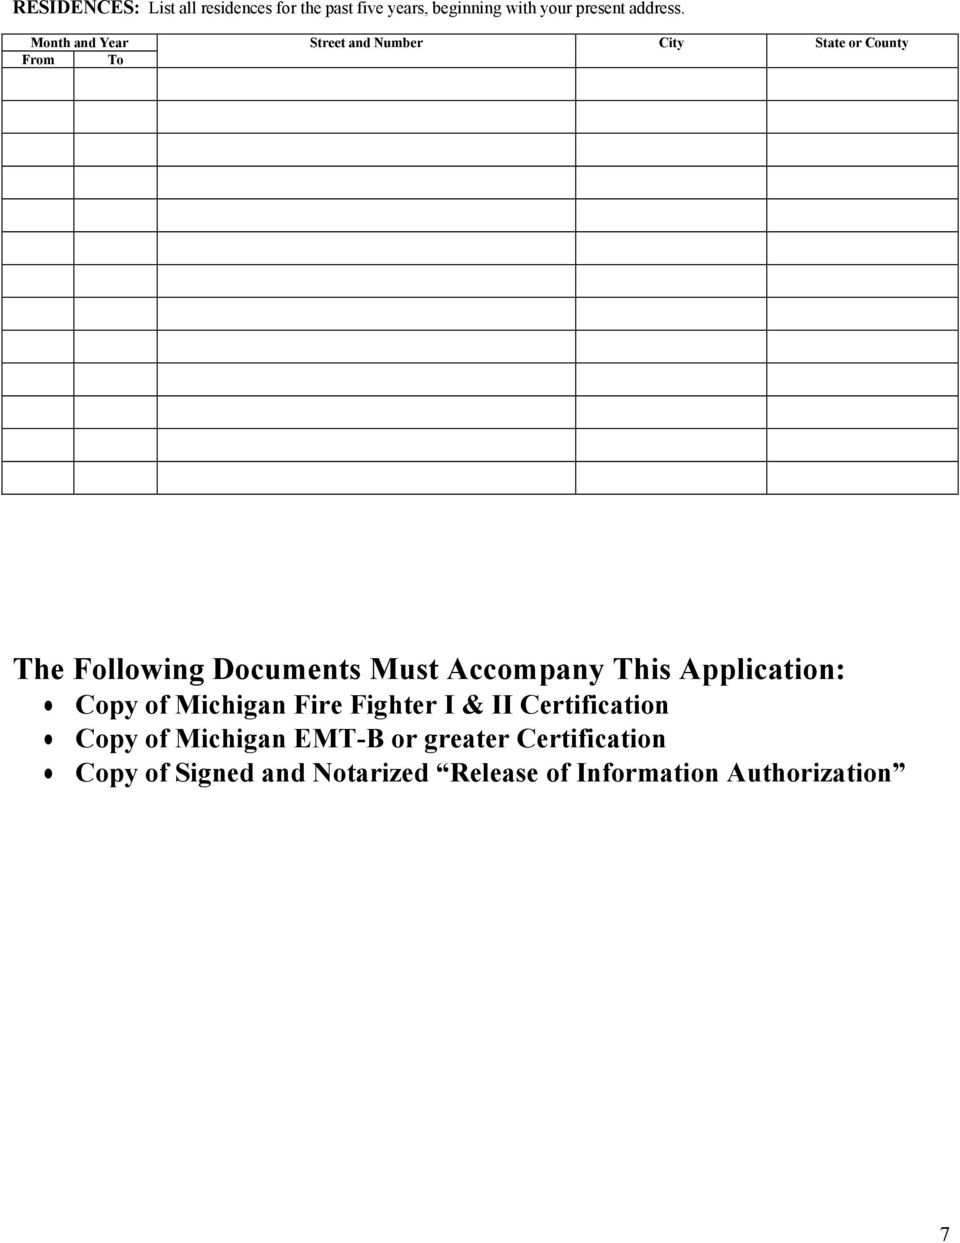 Accompany This Application: Copy of Michigan Fire Fighter I & II Certification Copy of